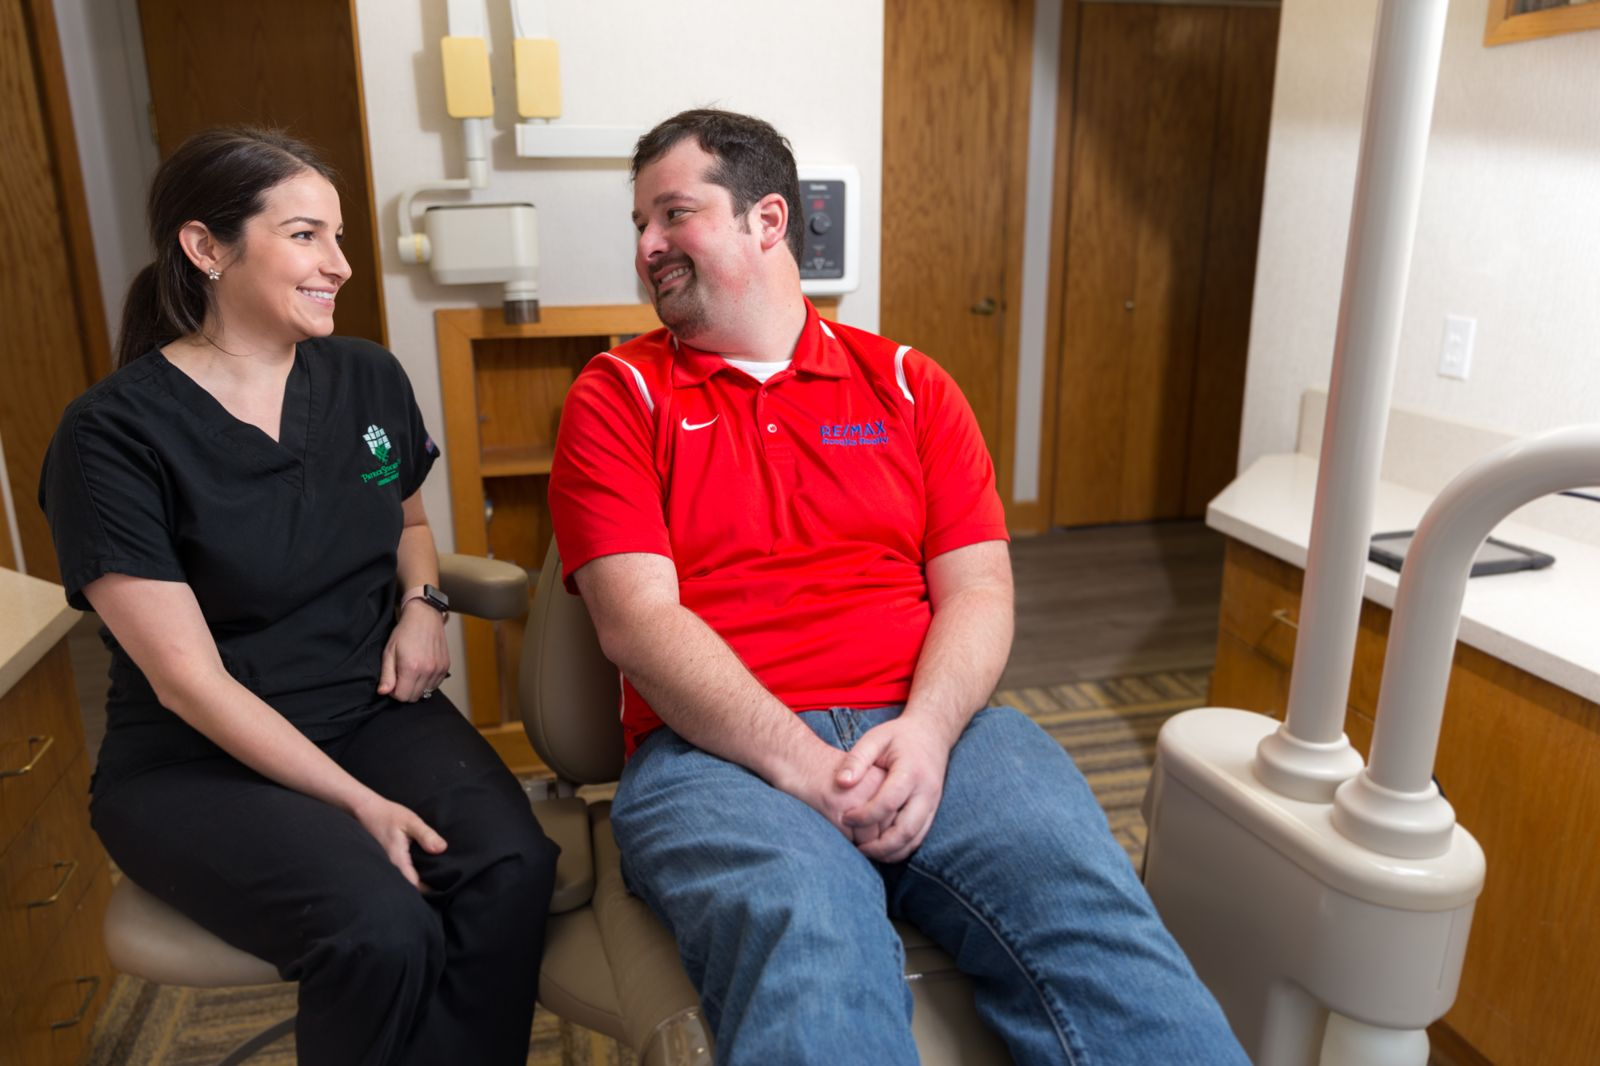 Dental Assistant smiling with patient